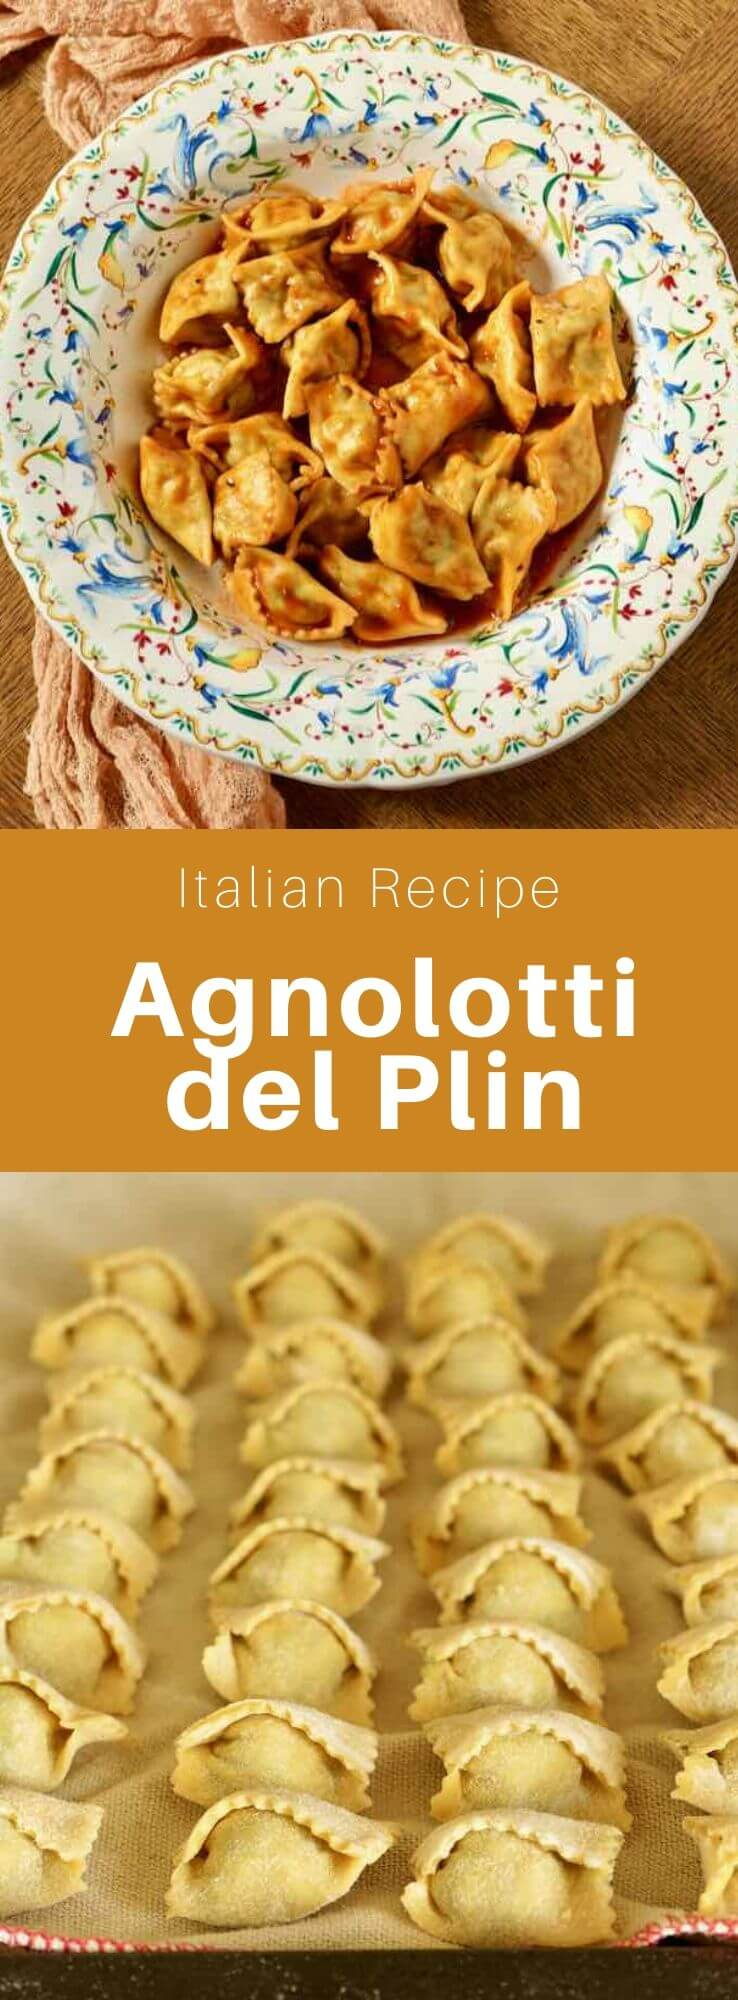 Agnolotti are stuffed pasta of Italian origin. The stuffing can be composed of meats and spinach but also other vegetables or cheeses. #ItalianRecipe #ItalianFood #ItalianCuisine #WorldCuisine #196 flavors